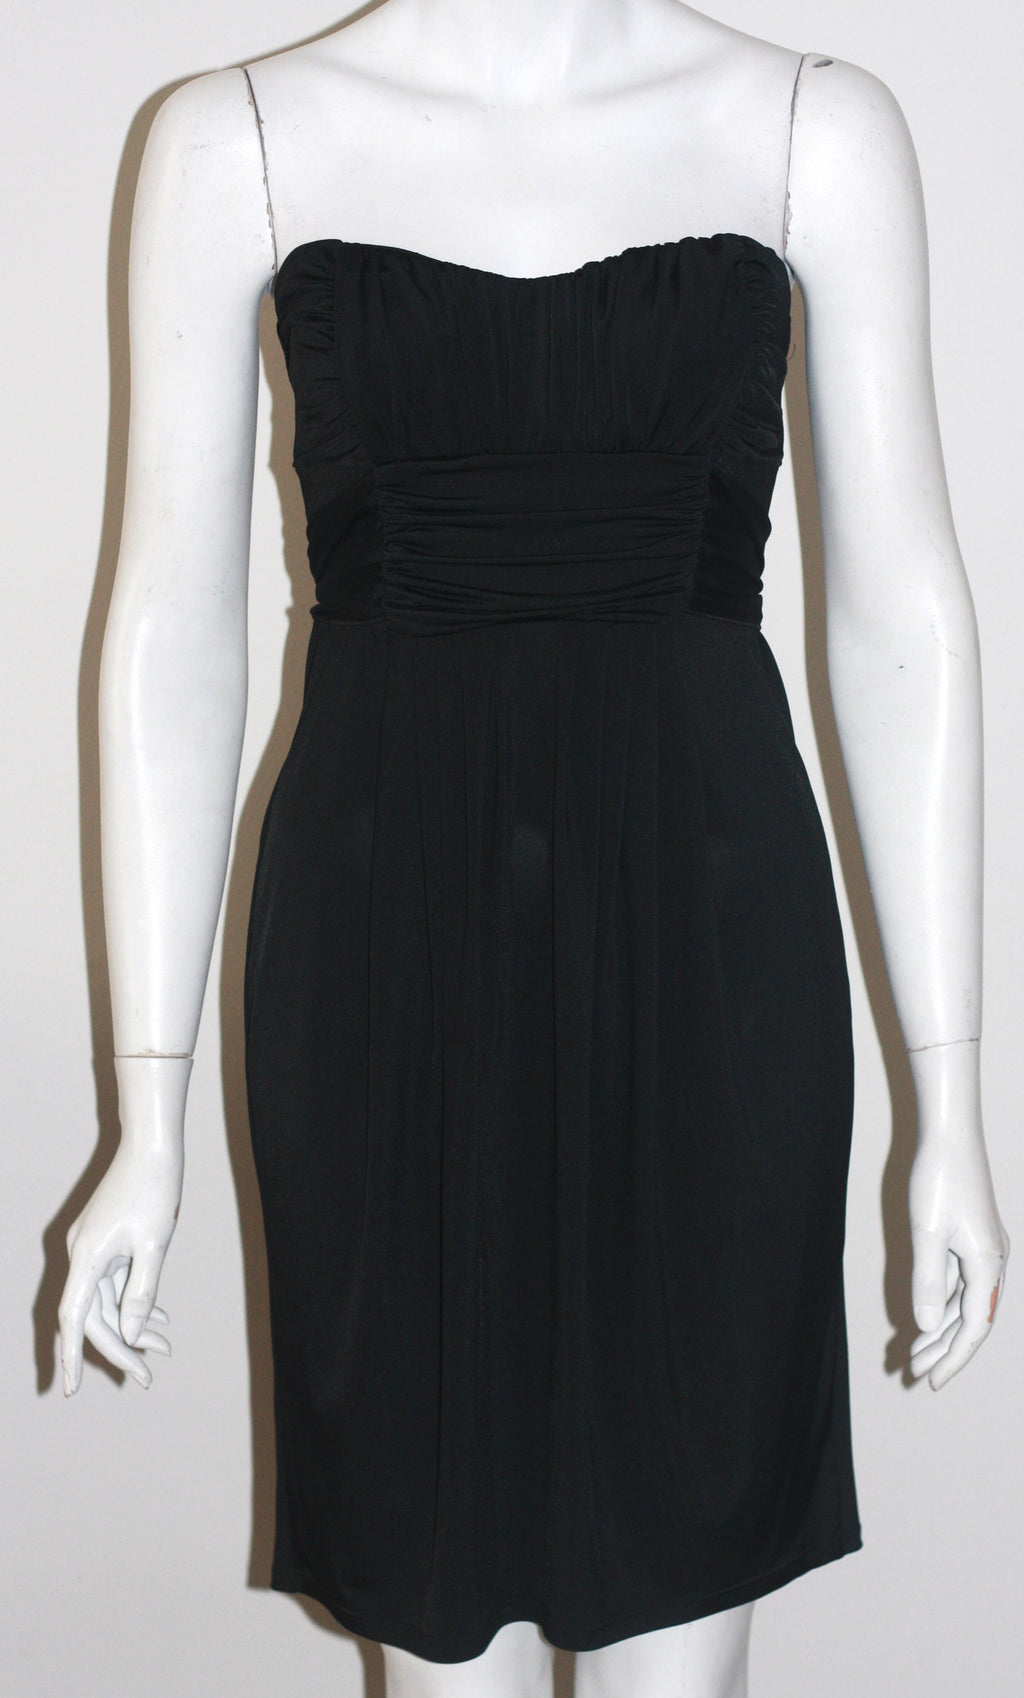 Brand New Sakura Strapless Black Dress - Joyce's Closet  - 1